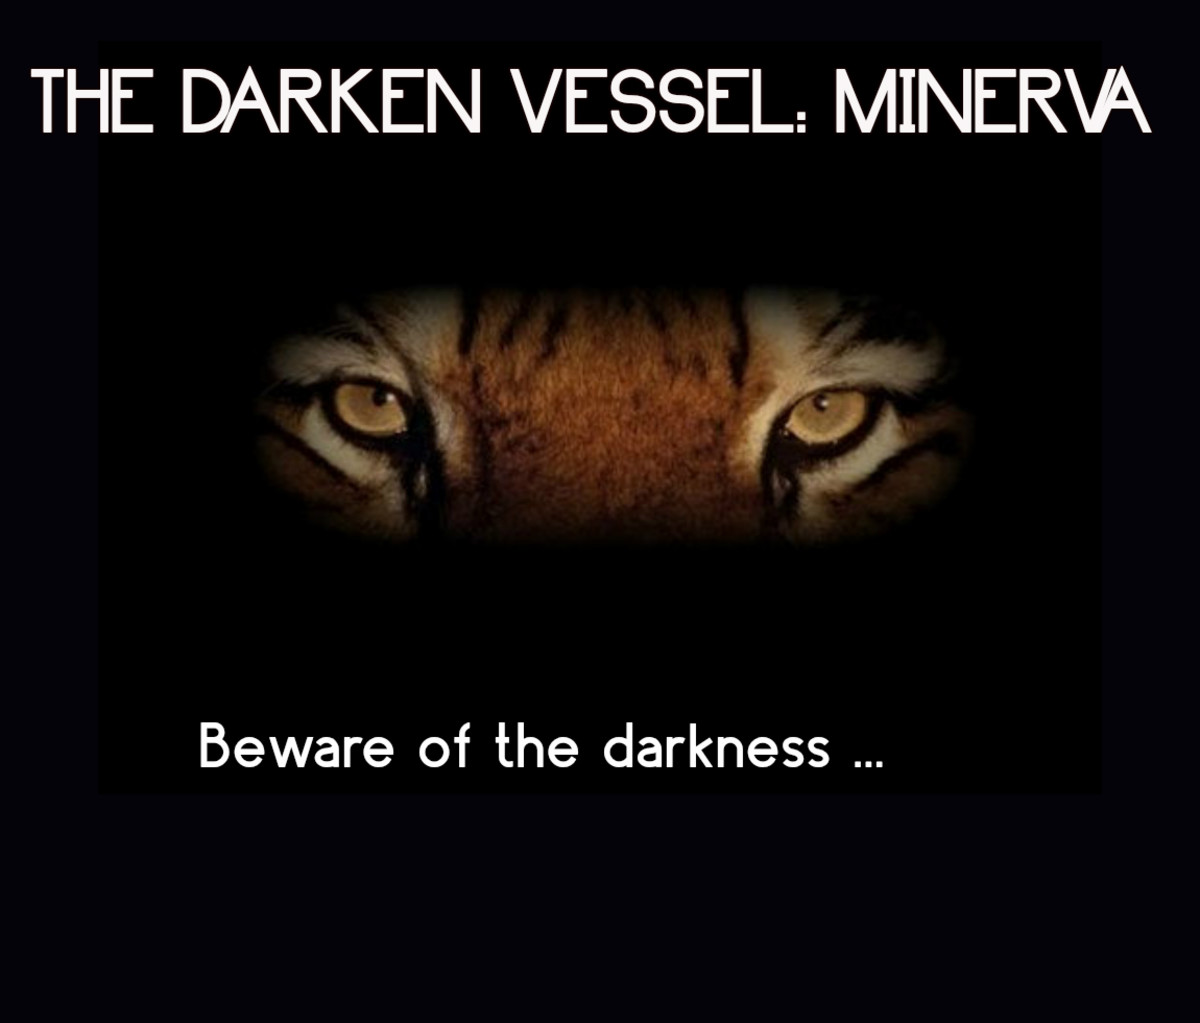 The Darken Vessel: Minerva 7